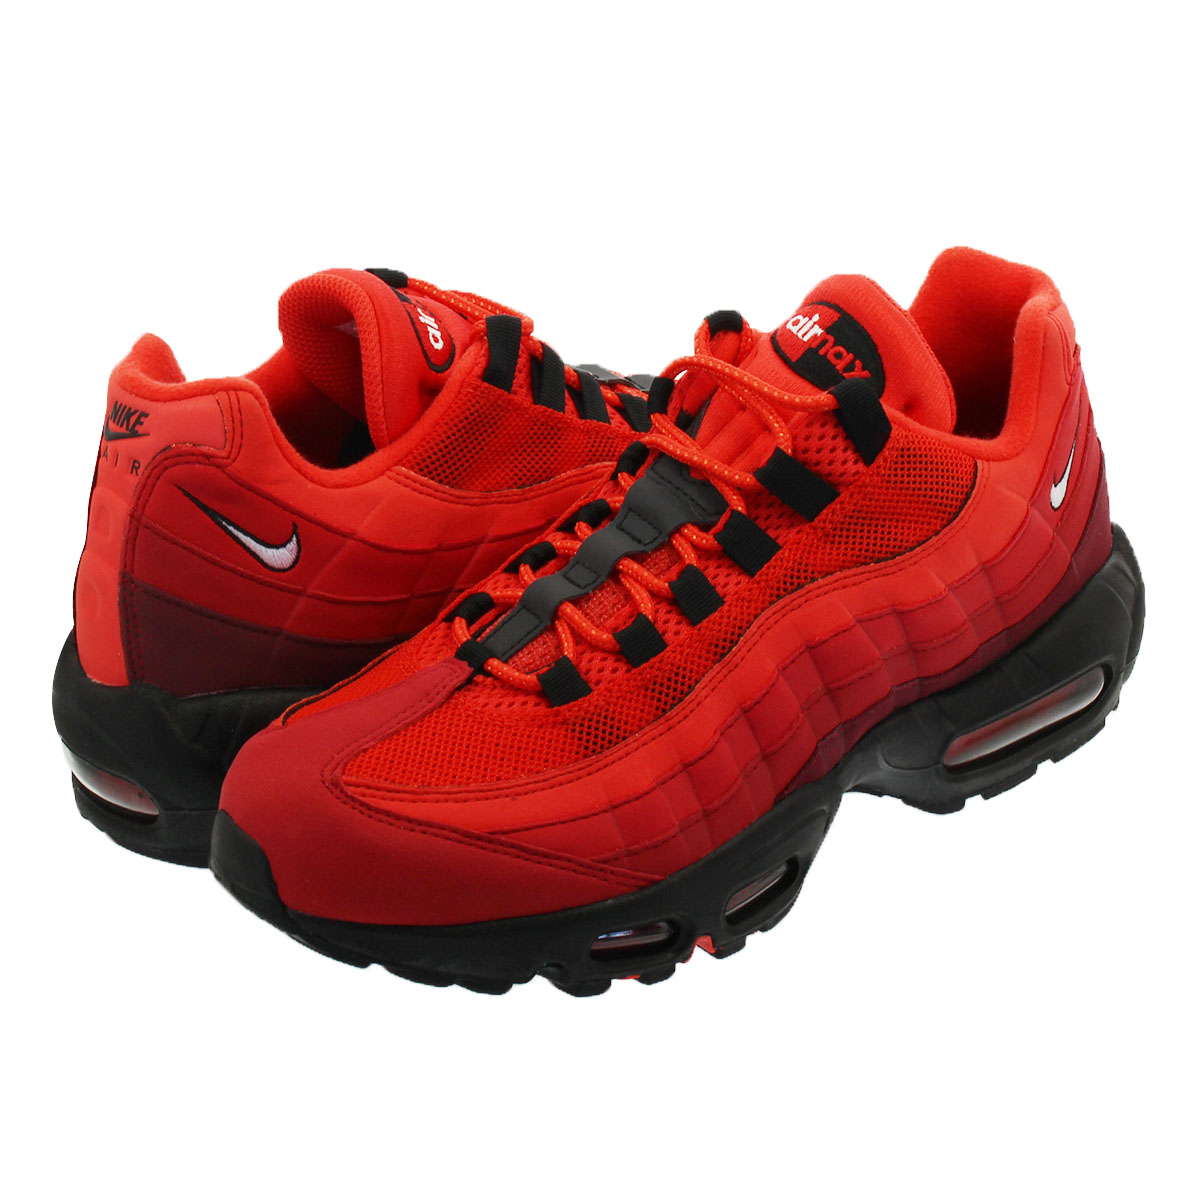 hot products the cheapest outlet on sale NIKE AIR MAX 95 OG Kie Ney AMAX 95 OG HABANERO RED/WHITE/UNIVERSITY RED/GYM  RED/TEAM RED/BLACK at2865-600